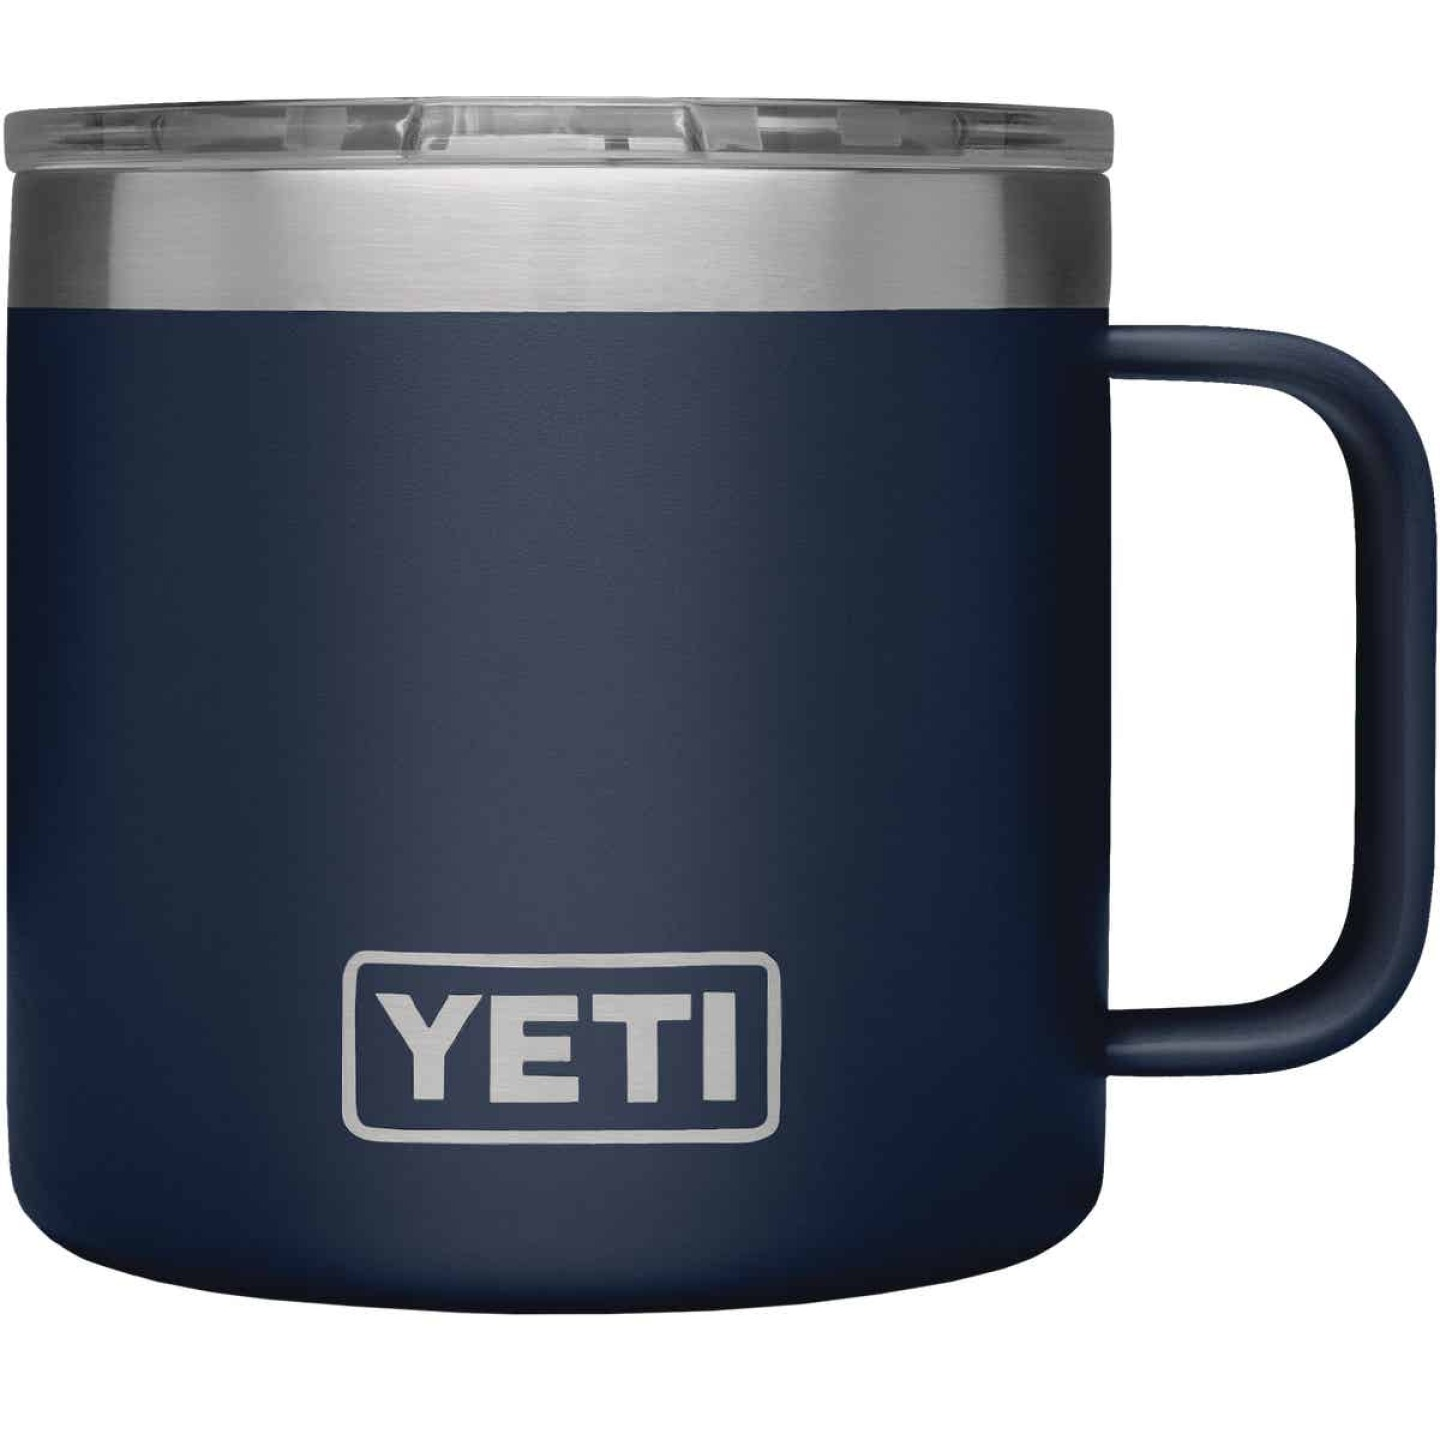 Yeti Rambler 14 Oz. Navy Blue Stainless Steel Insulated Mug Image 3